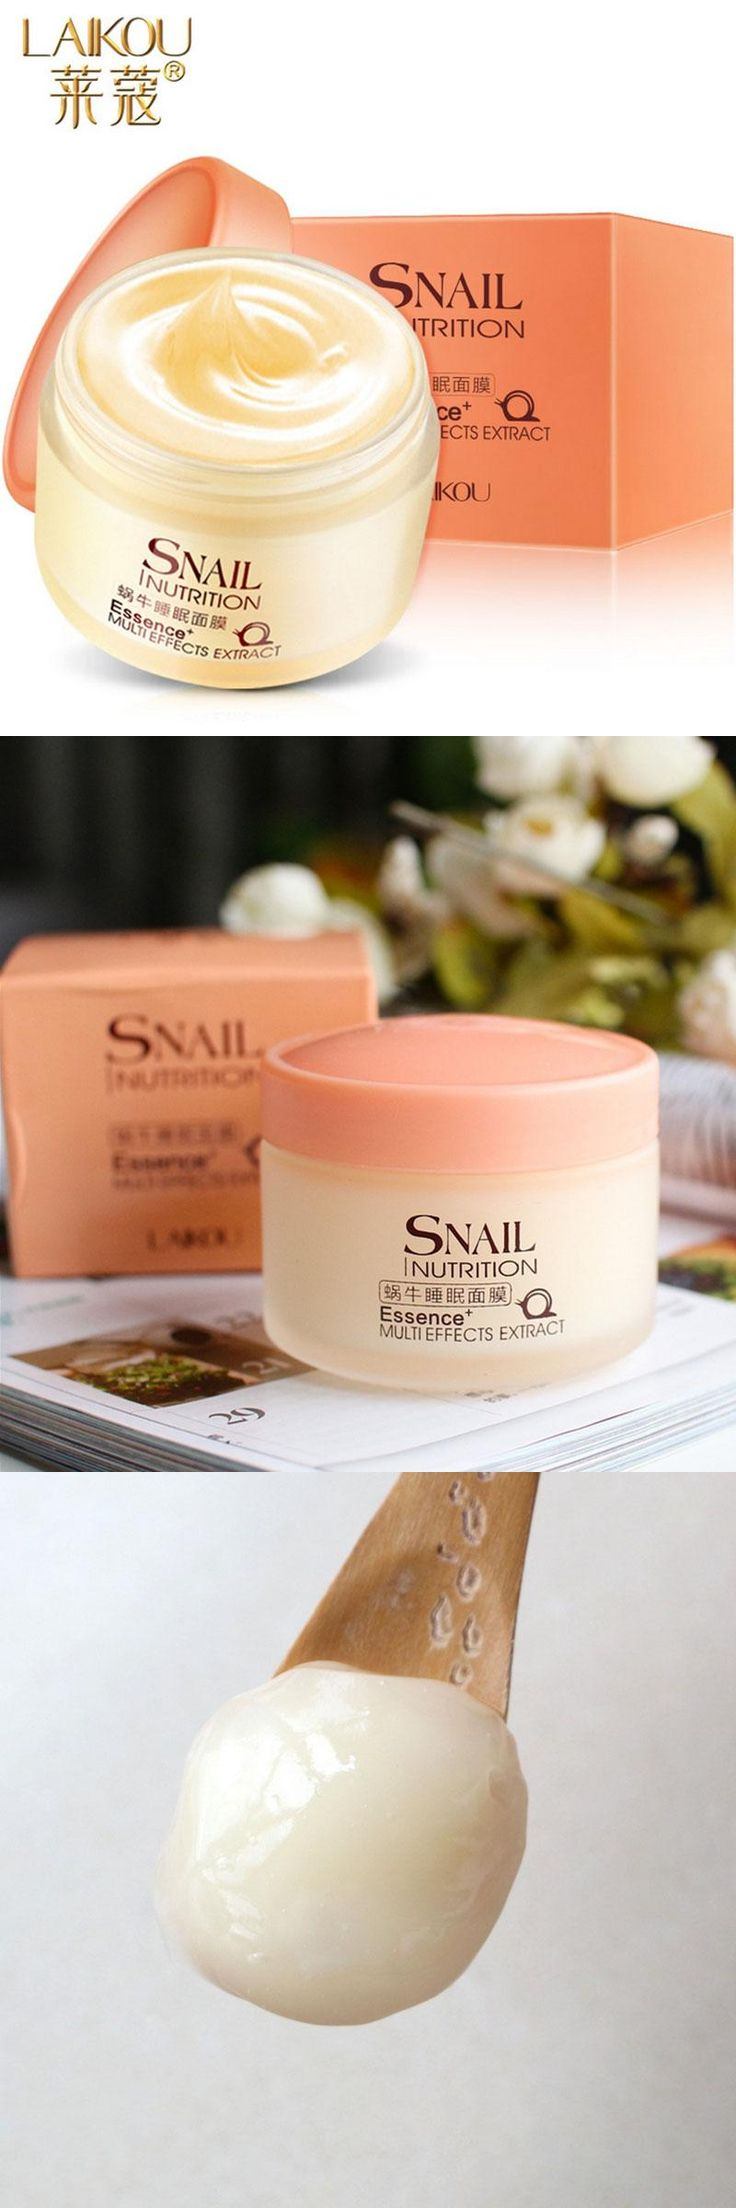 [Visit to Buy] Snail Whitening Firm Facial Mask Cream Face Care Fade Dark Spots Treatment Skin Care Face MASK Anti Wrinkle Aging Moisturizing #Advertisement